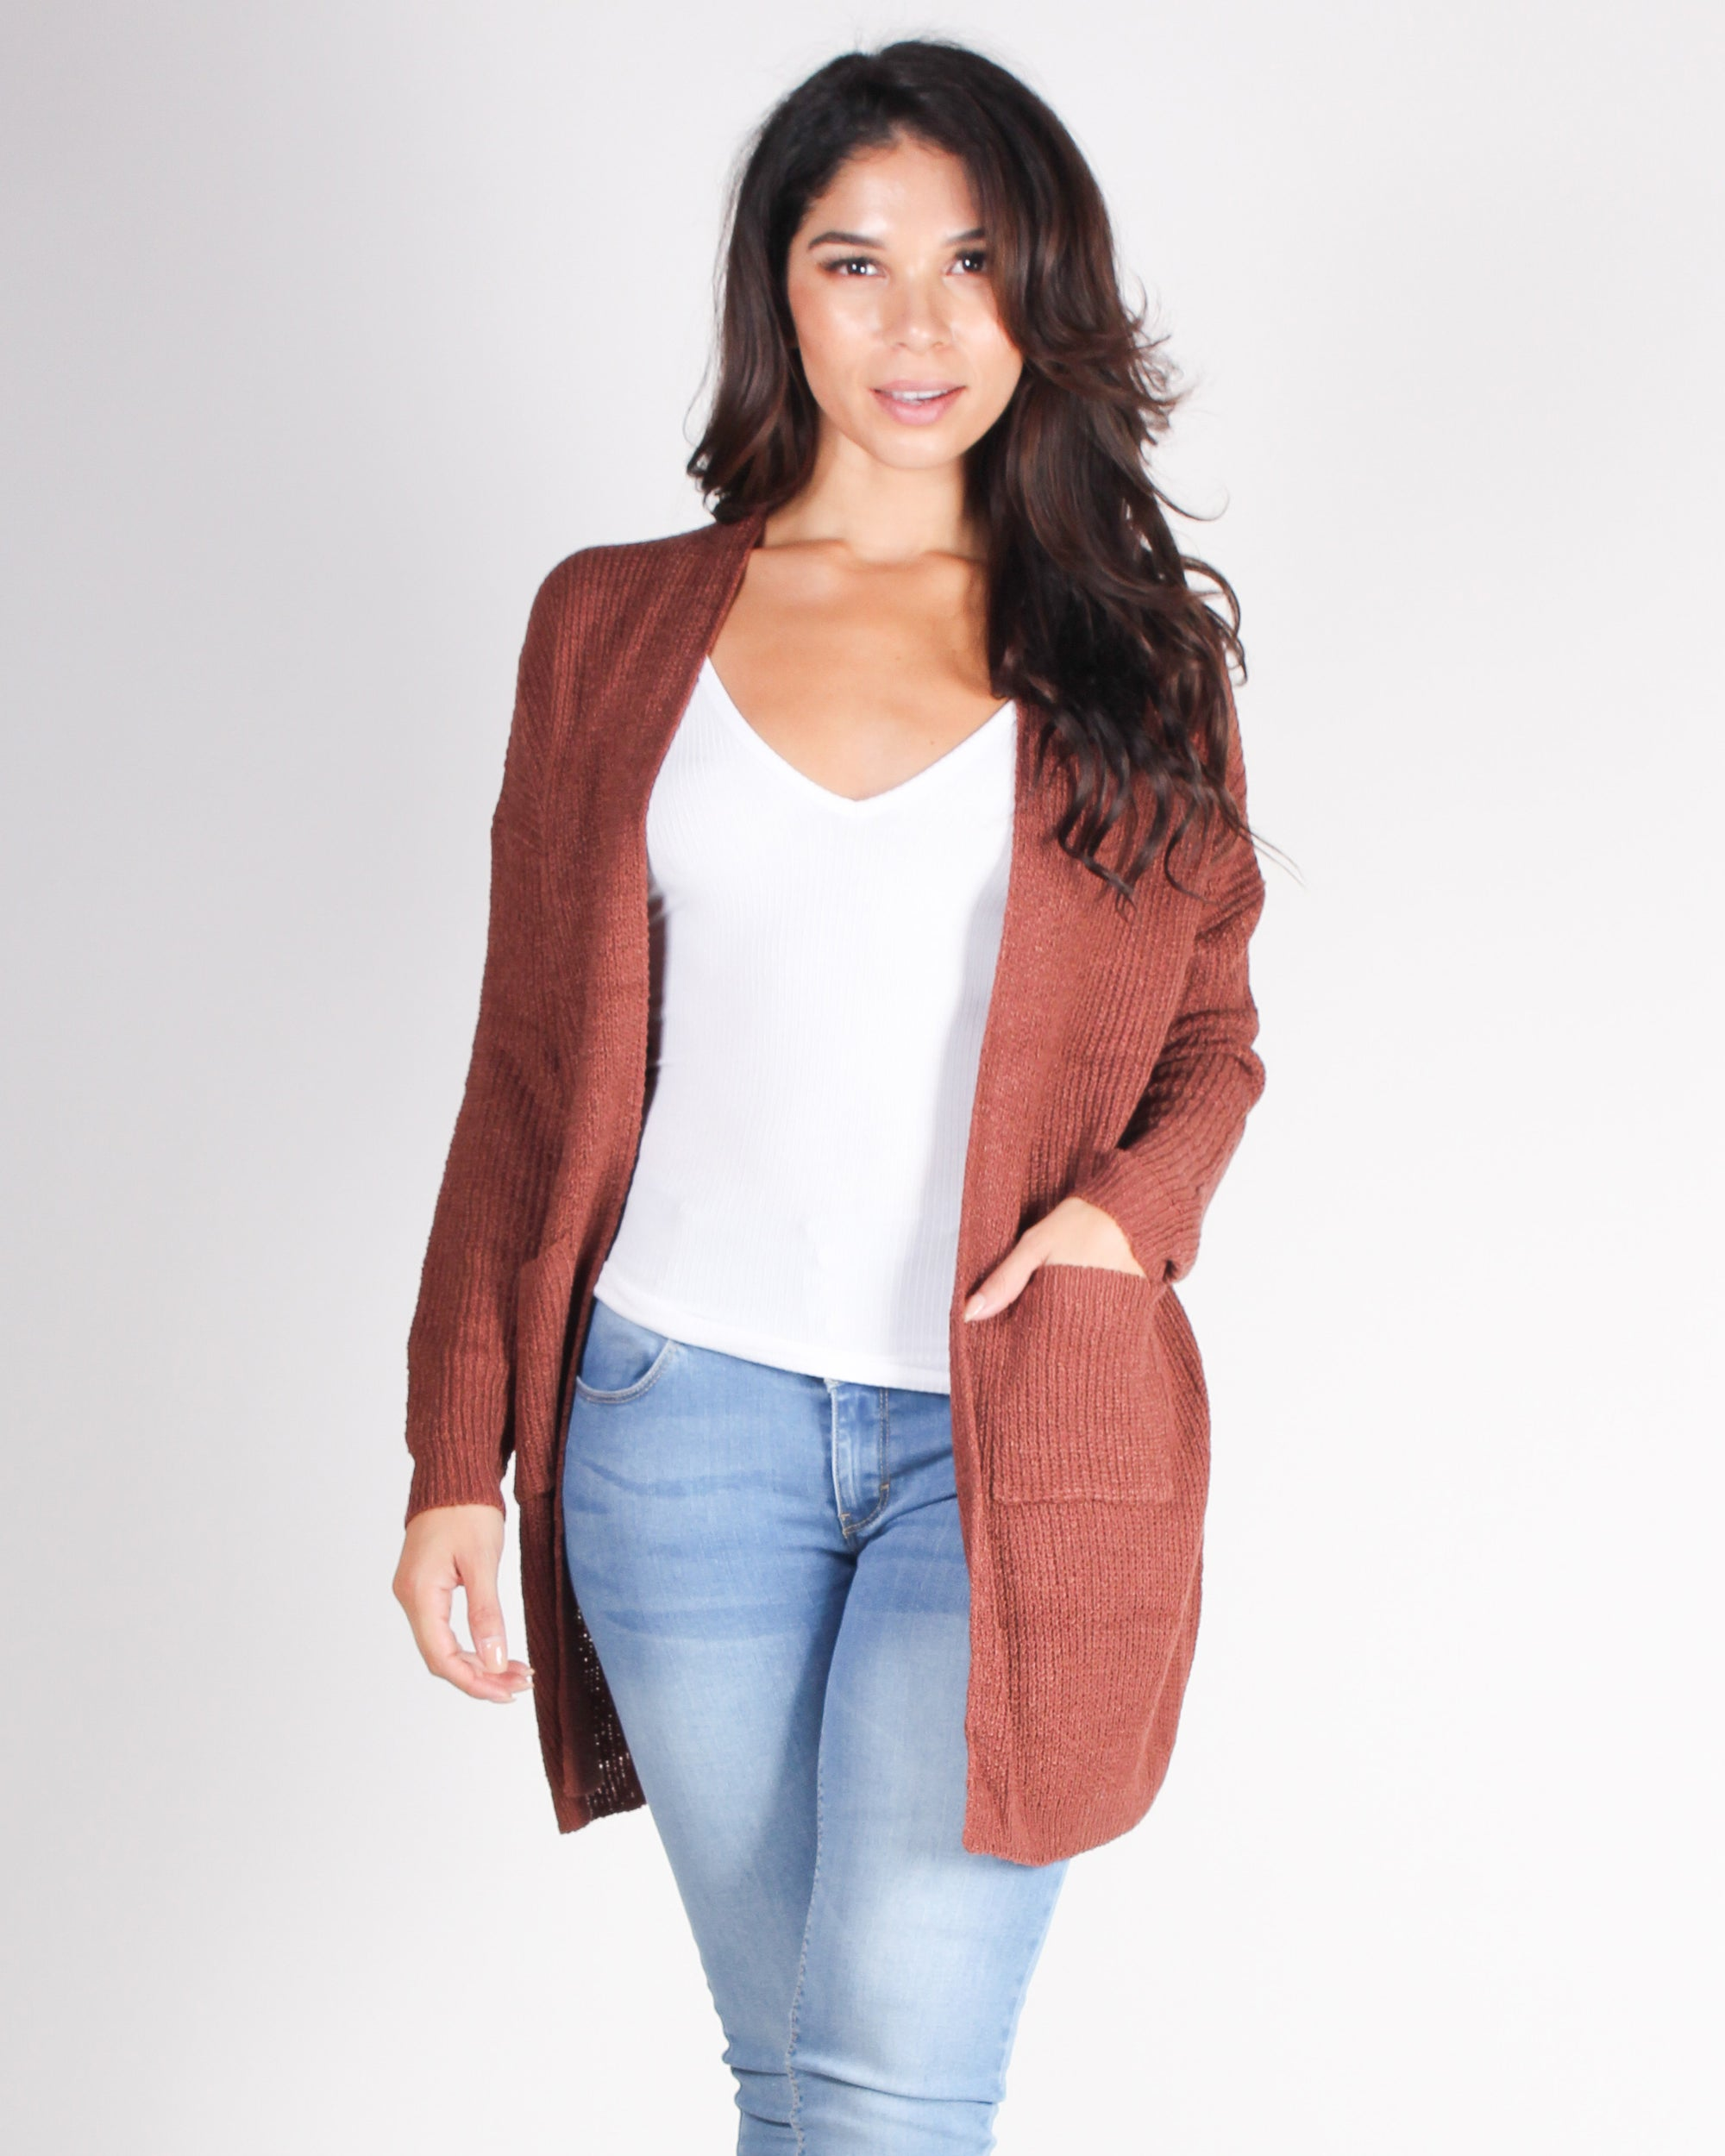 Fashion Q Shop Q Own How Amazing You Are Cardigan (Cherrywood) C10085